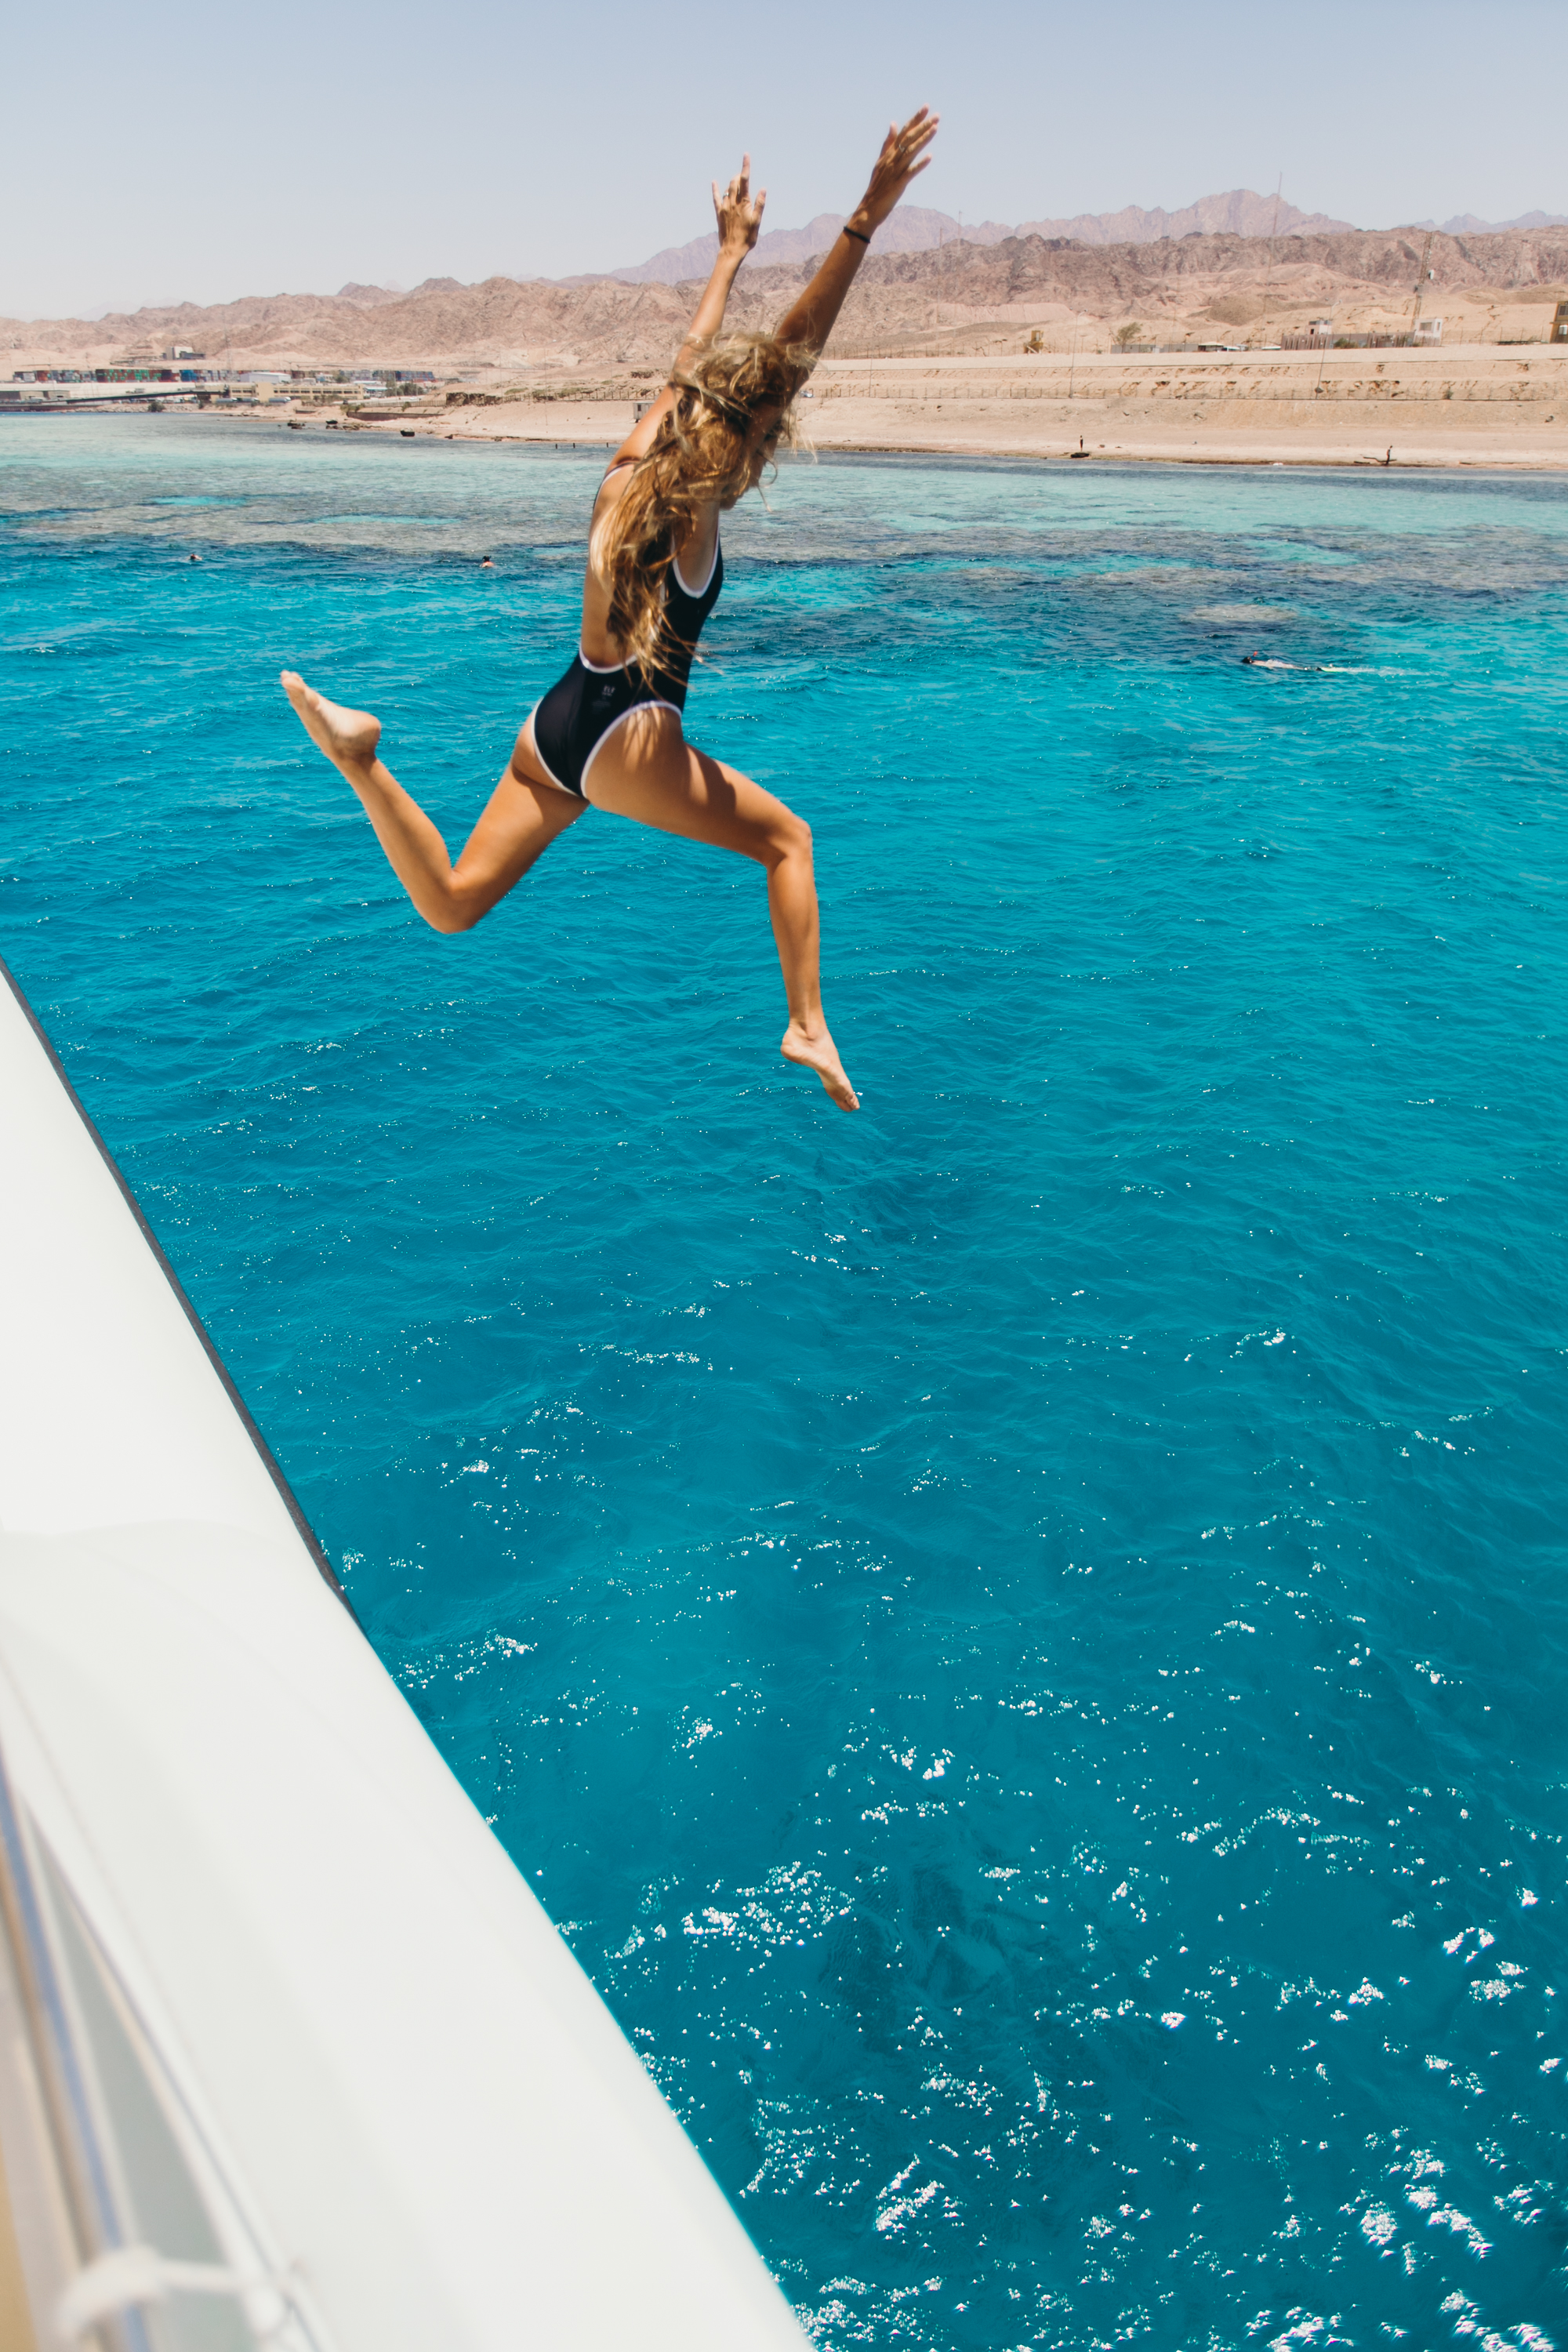 Jumping from the boat was the best! My heart felt so happy and free this day.